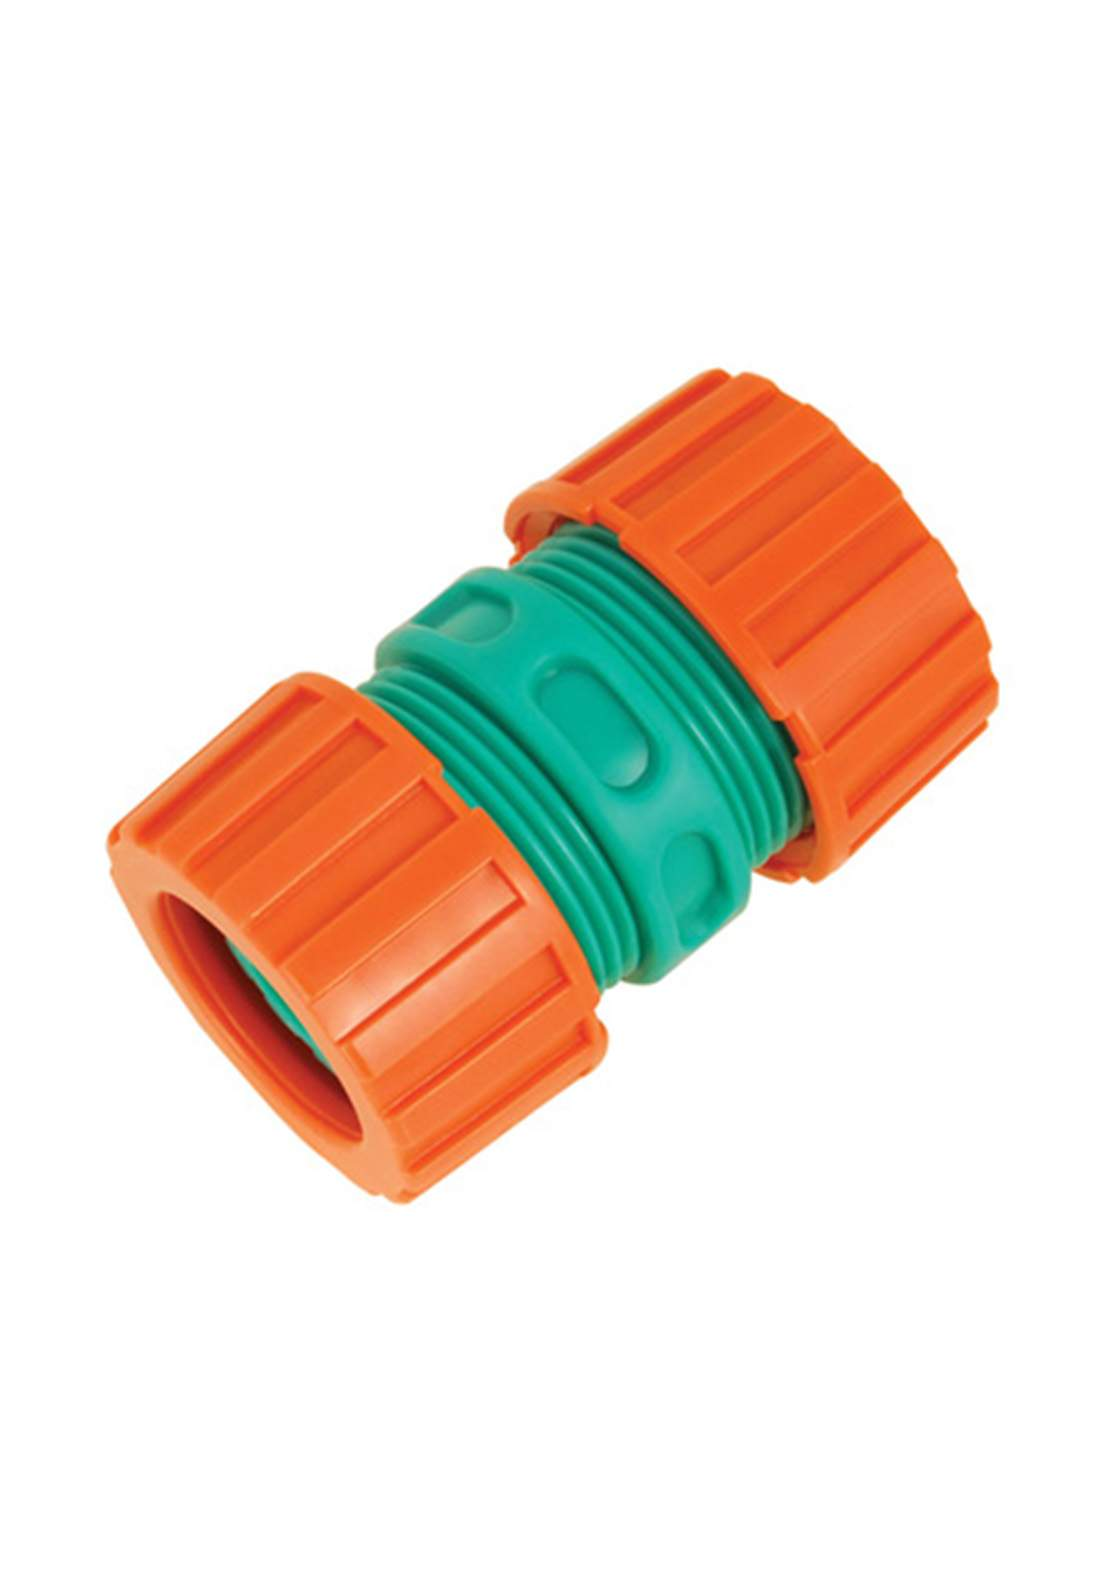 Tramontina 78510/000 Repair Connection For 1/2 inch Hoses وصلة بين خرطومين مياه